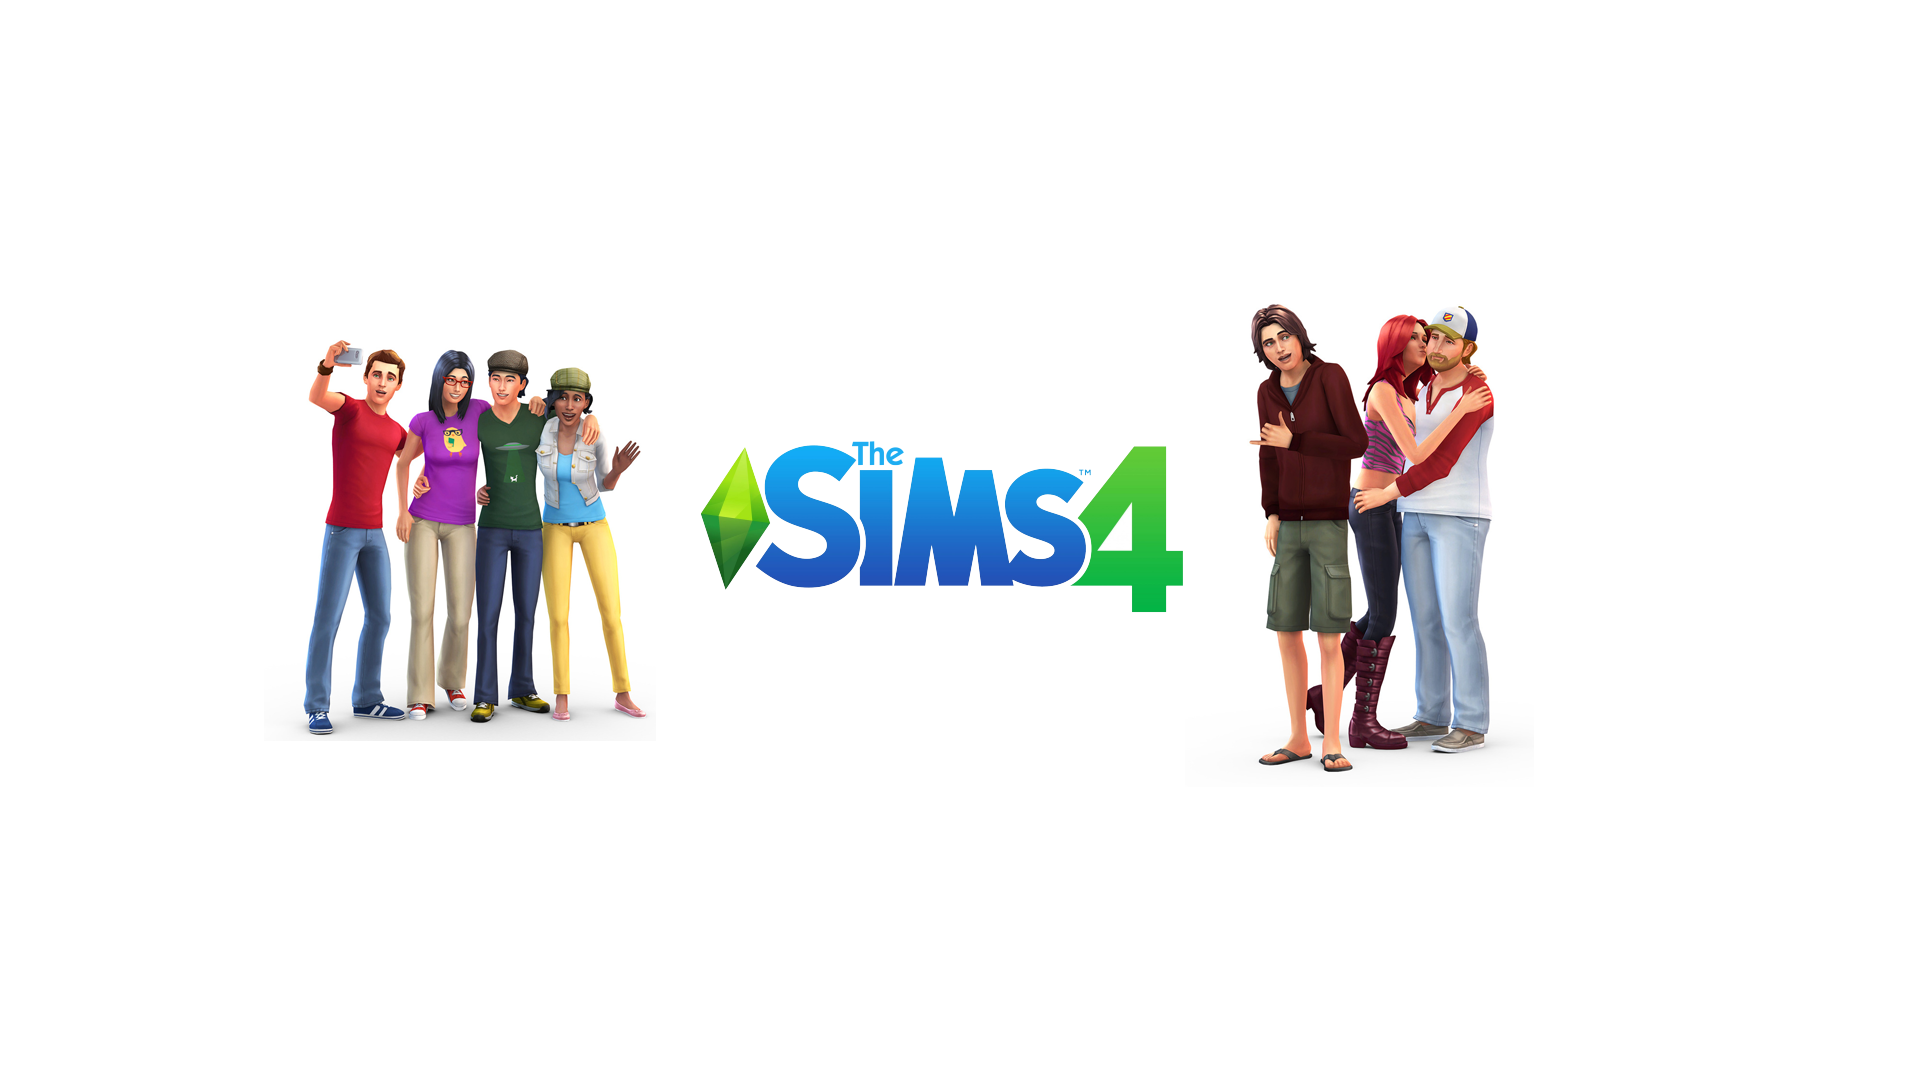 Free Download The Sims 4 Wallpapers 1920x1080 For Your